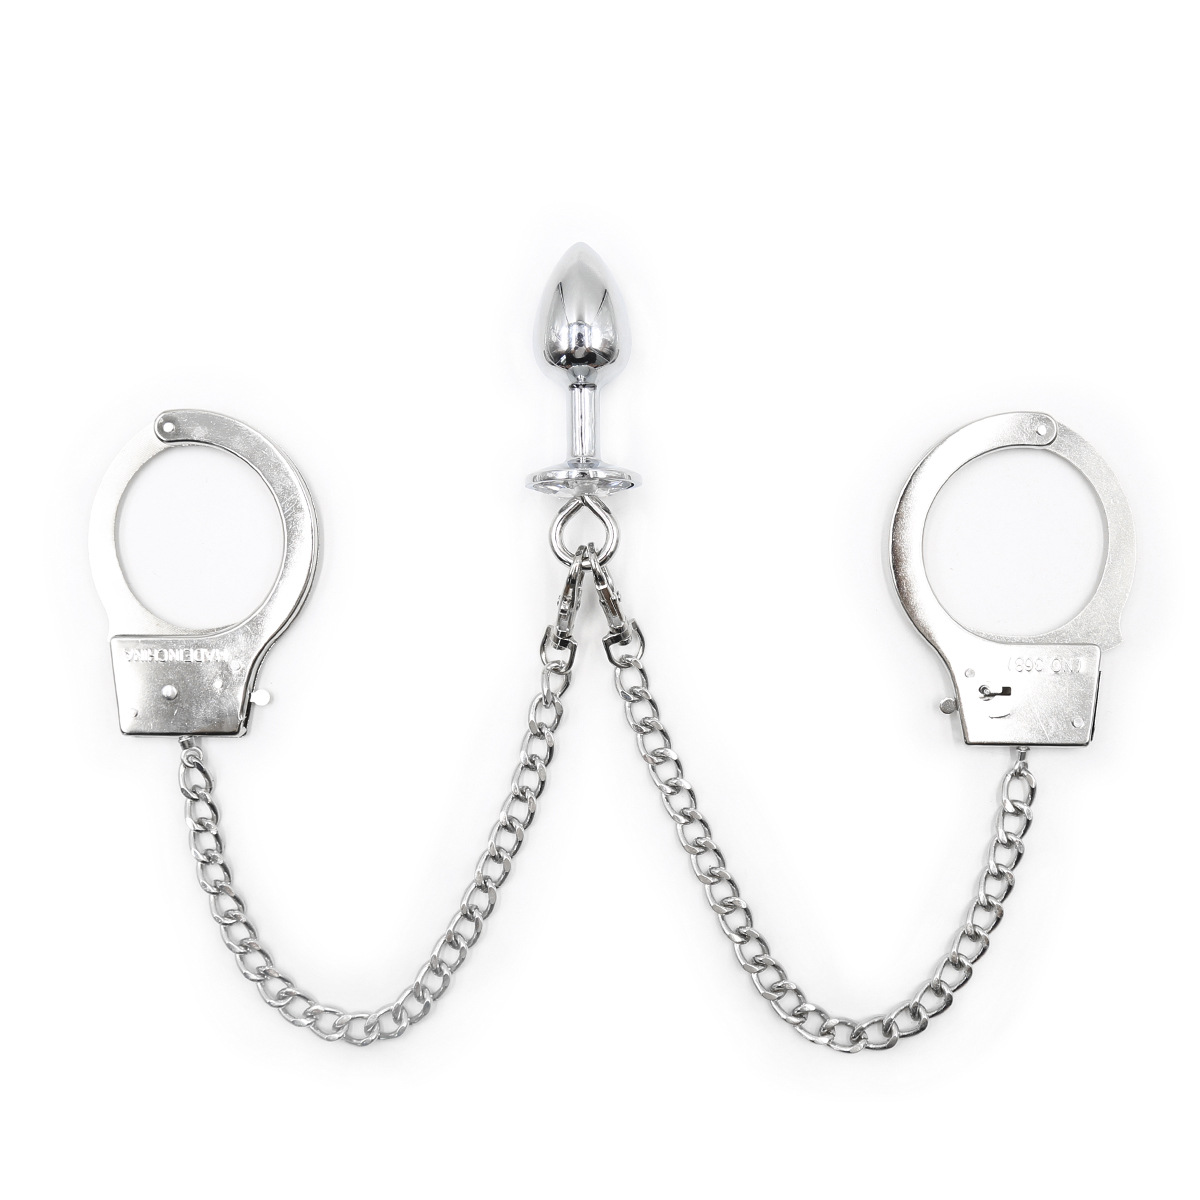 Sex Toys For Men Anal Plug Gay Fetish Metal Tail Plug Hand Cuffs Adult Products Slave Bdsm Women Handcuffs Bondage Restraints